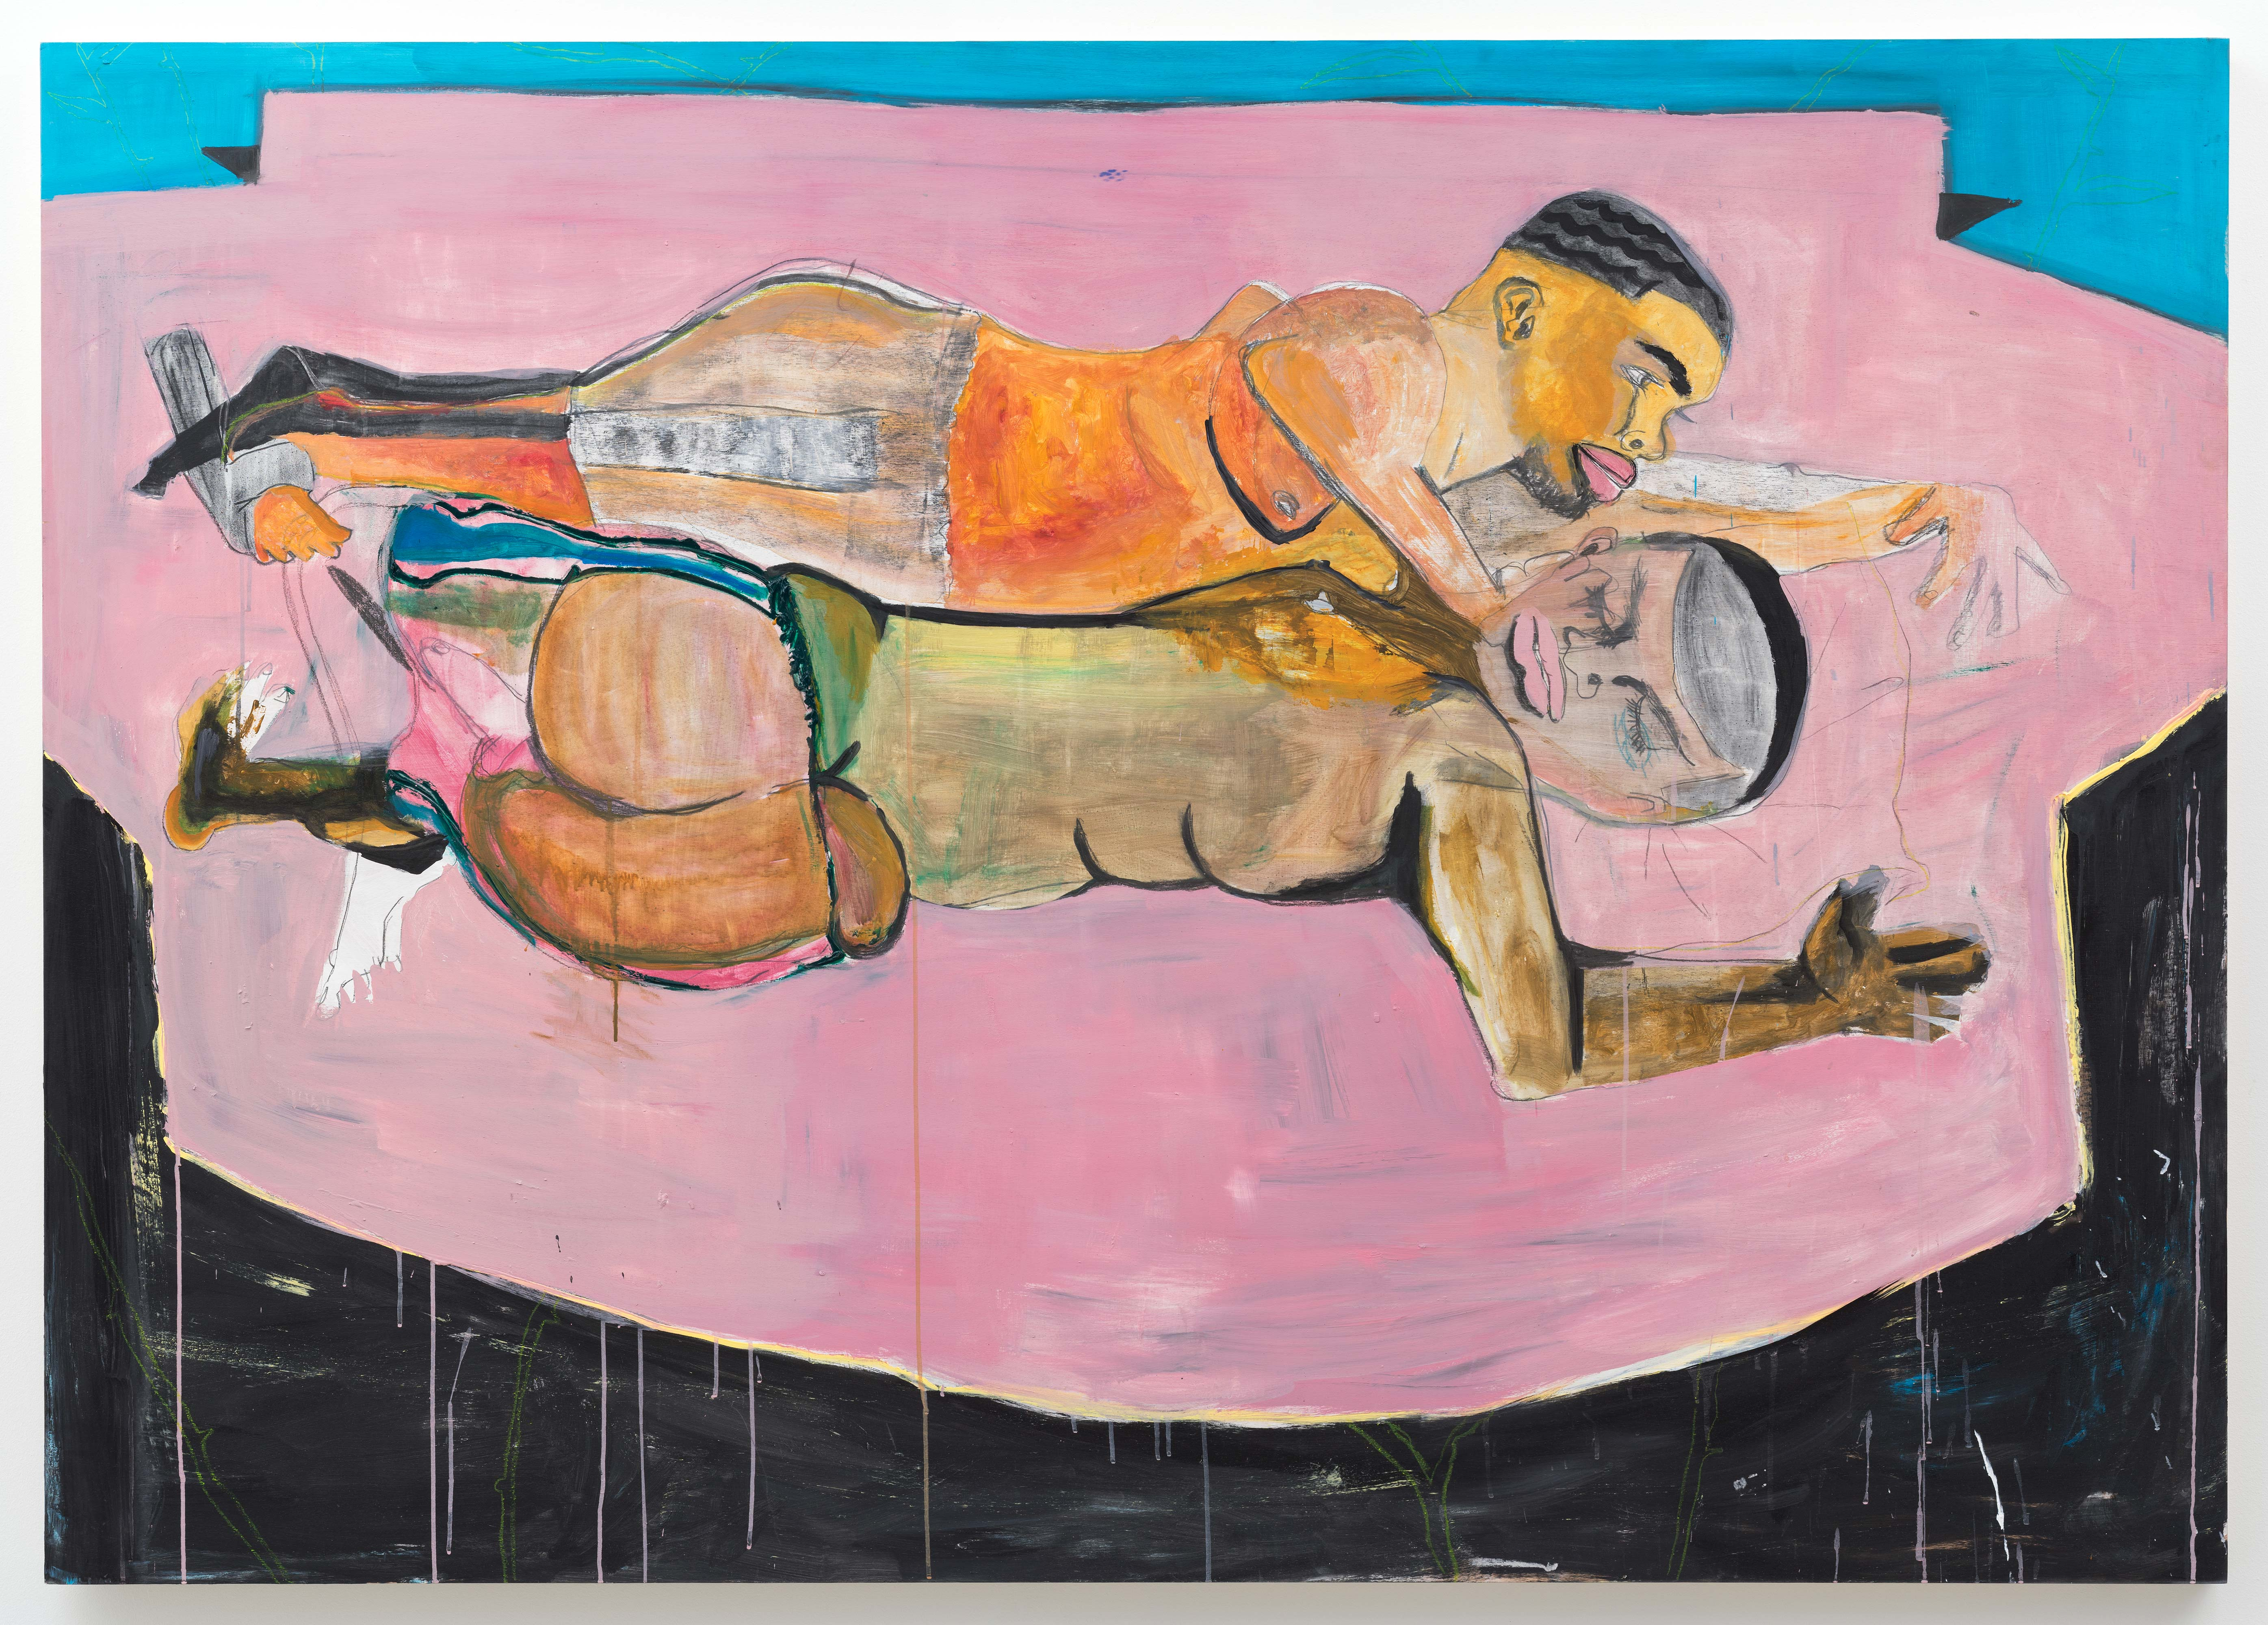 Jonathan Lyndon Chase<br>Two Men in Bed<br>2015<br>acrylic on panel<br>60 x 84 in (152.4 x 213.4 cm)